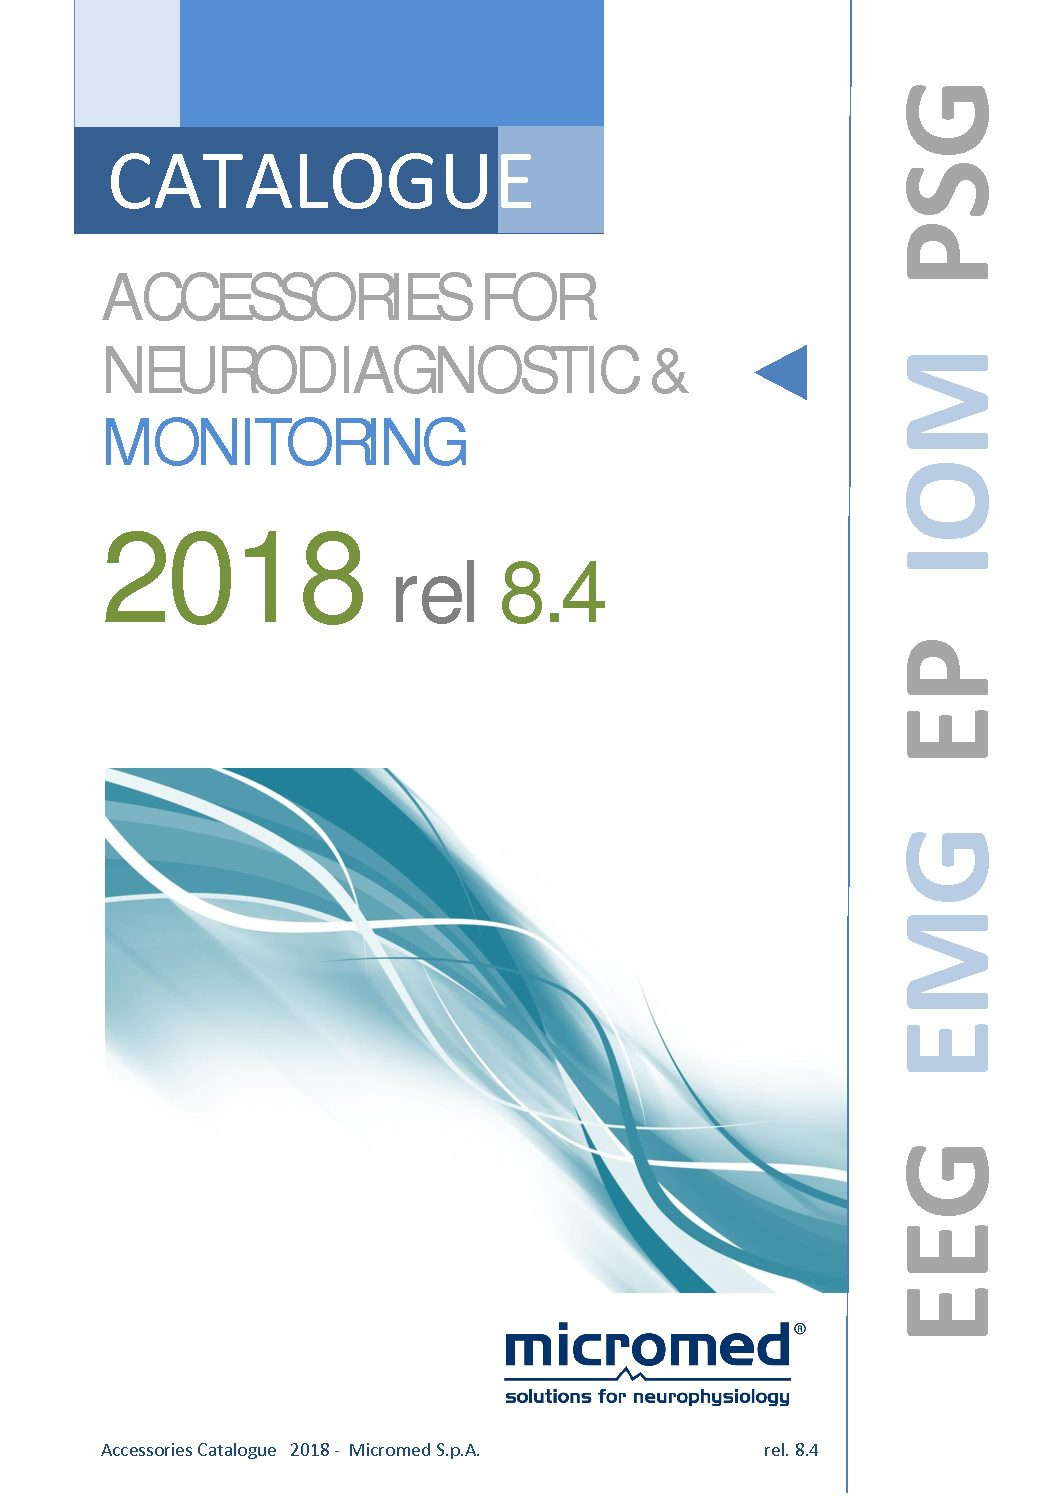 Micromed Accessories Catalogue ENG 8.4 3 pdf - BRAIN QUICK AMBULATORY LINE